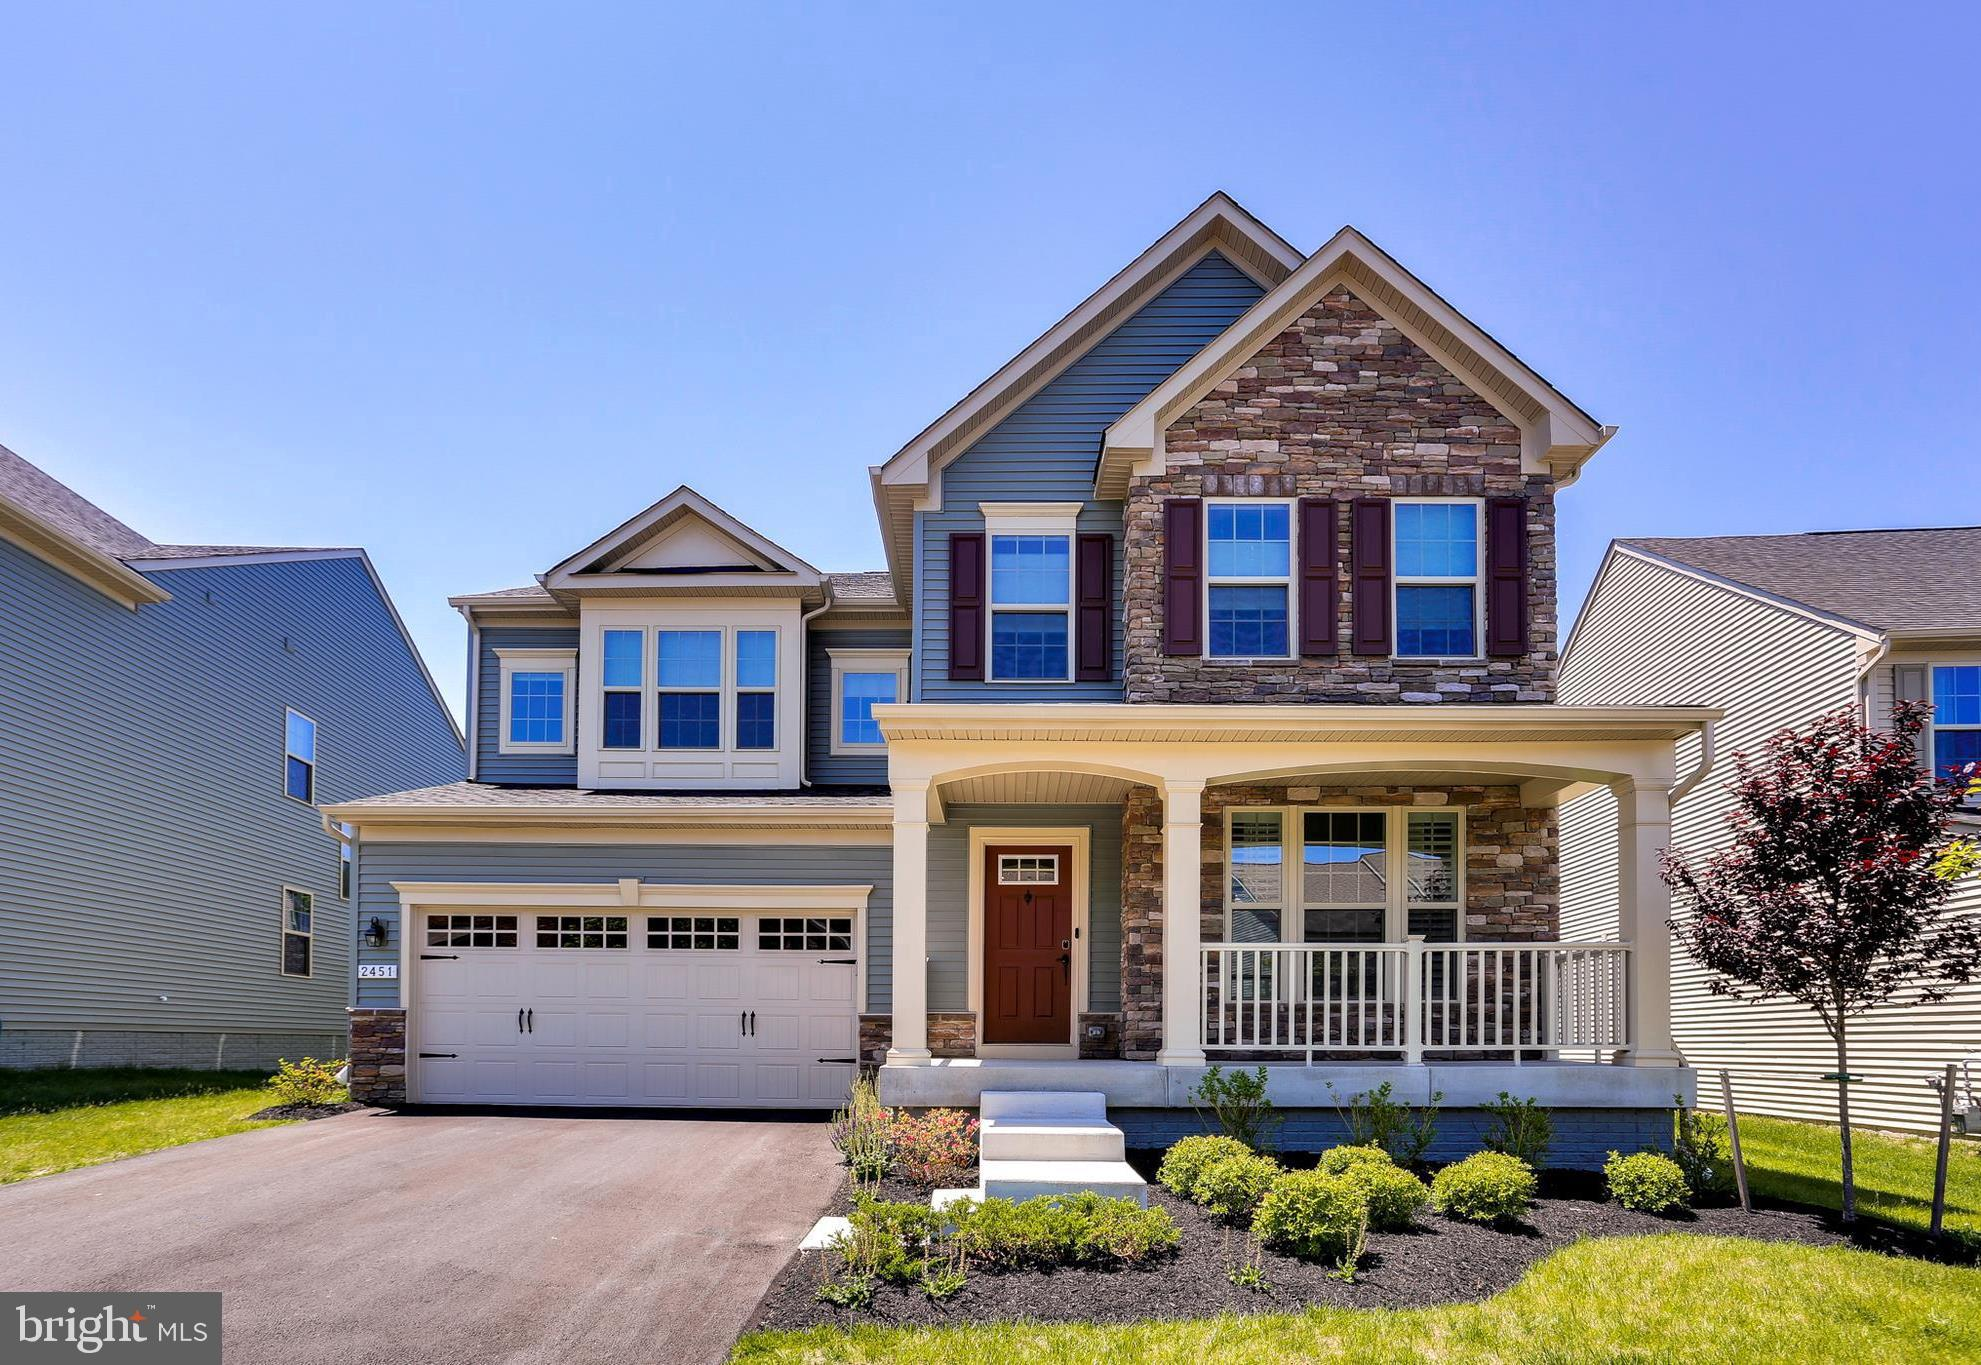 2451 VINEYARD SPRINGS WAY, ELLICOTT CITY, MD 21043